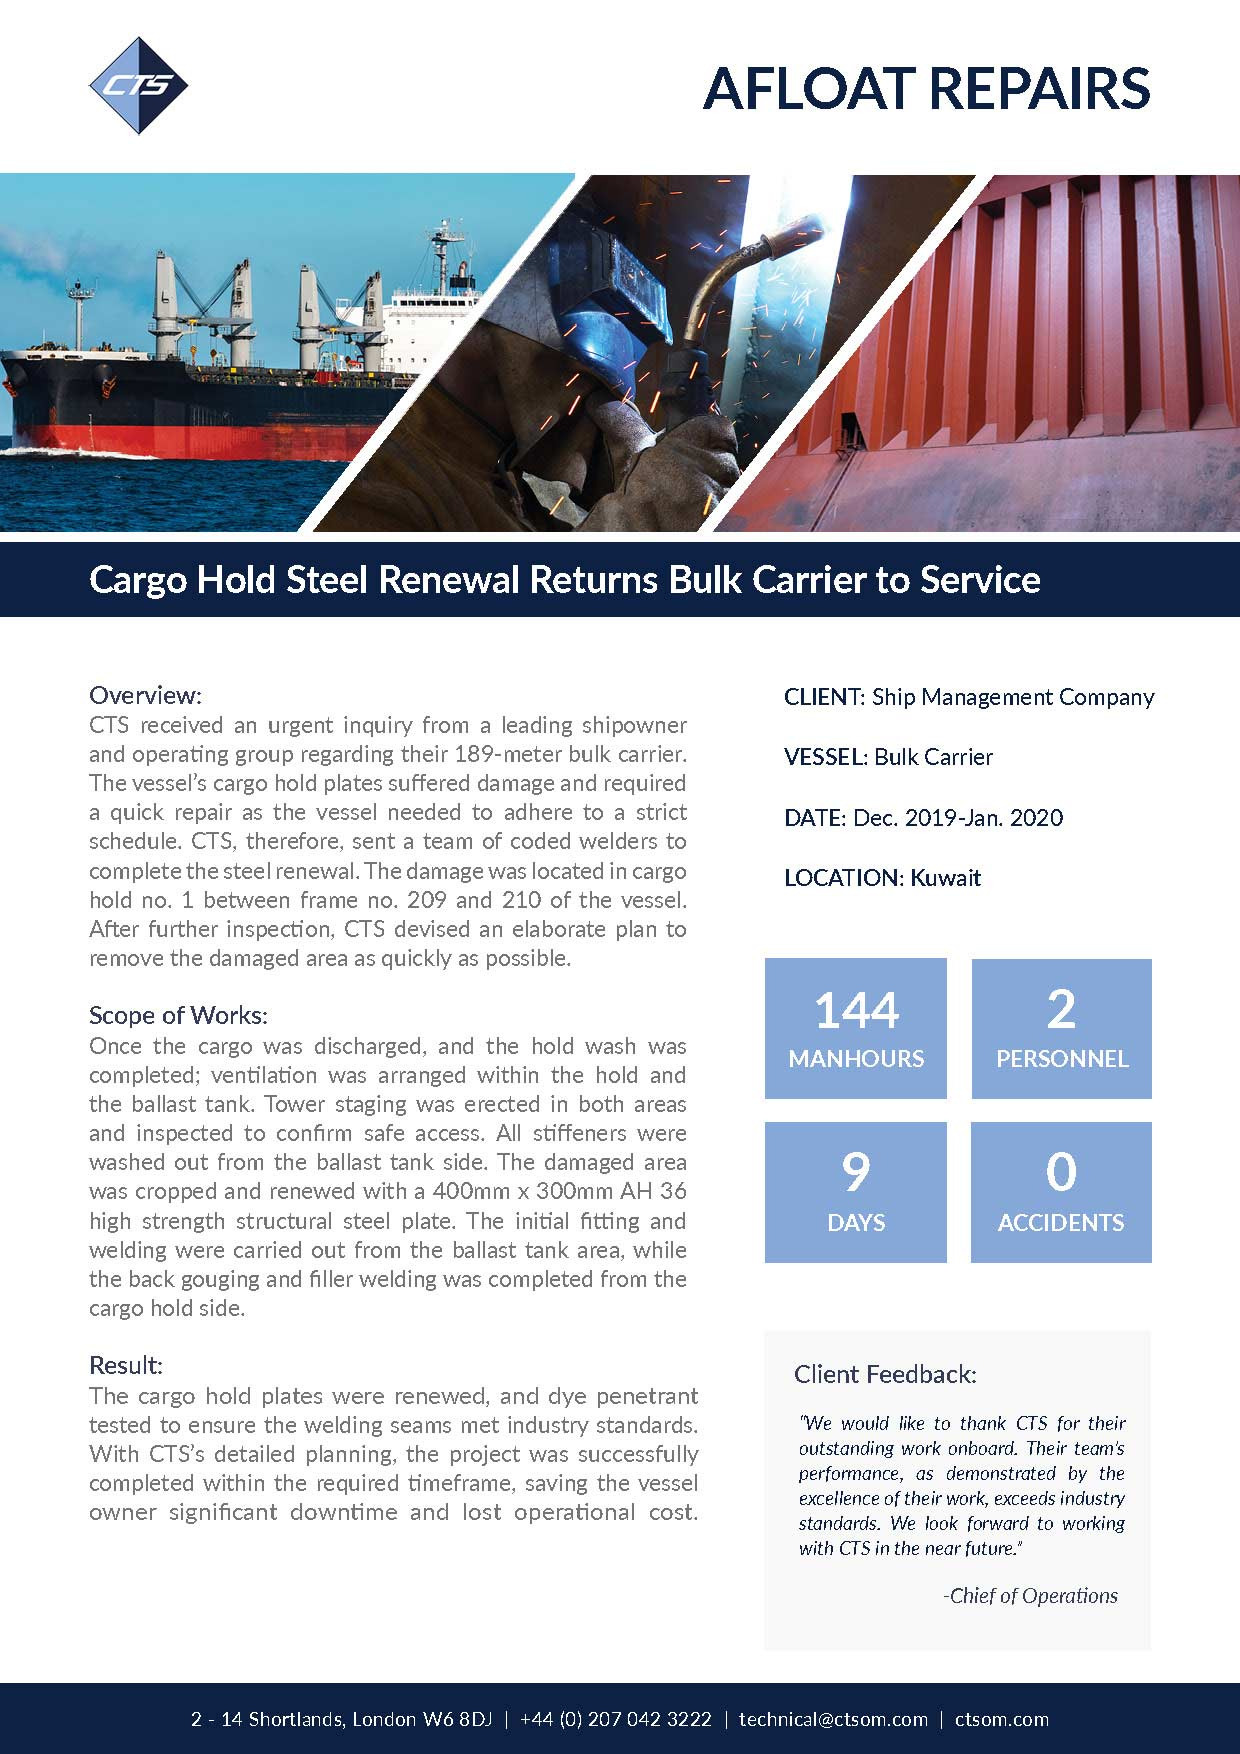 Engine Overhaul and Customization Restores Bulk Carrier